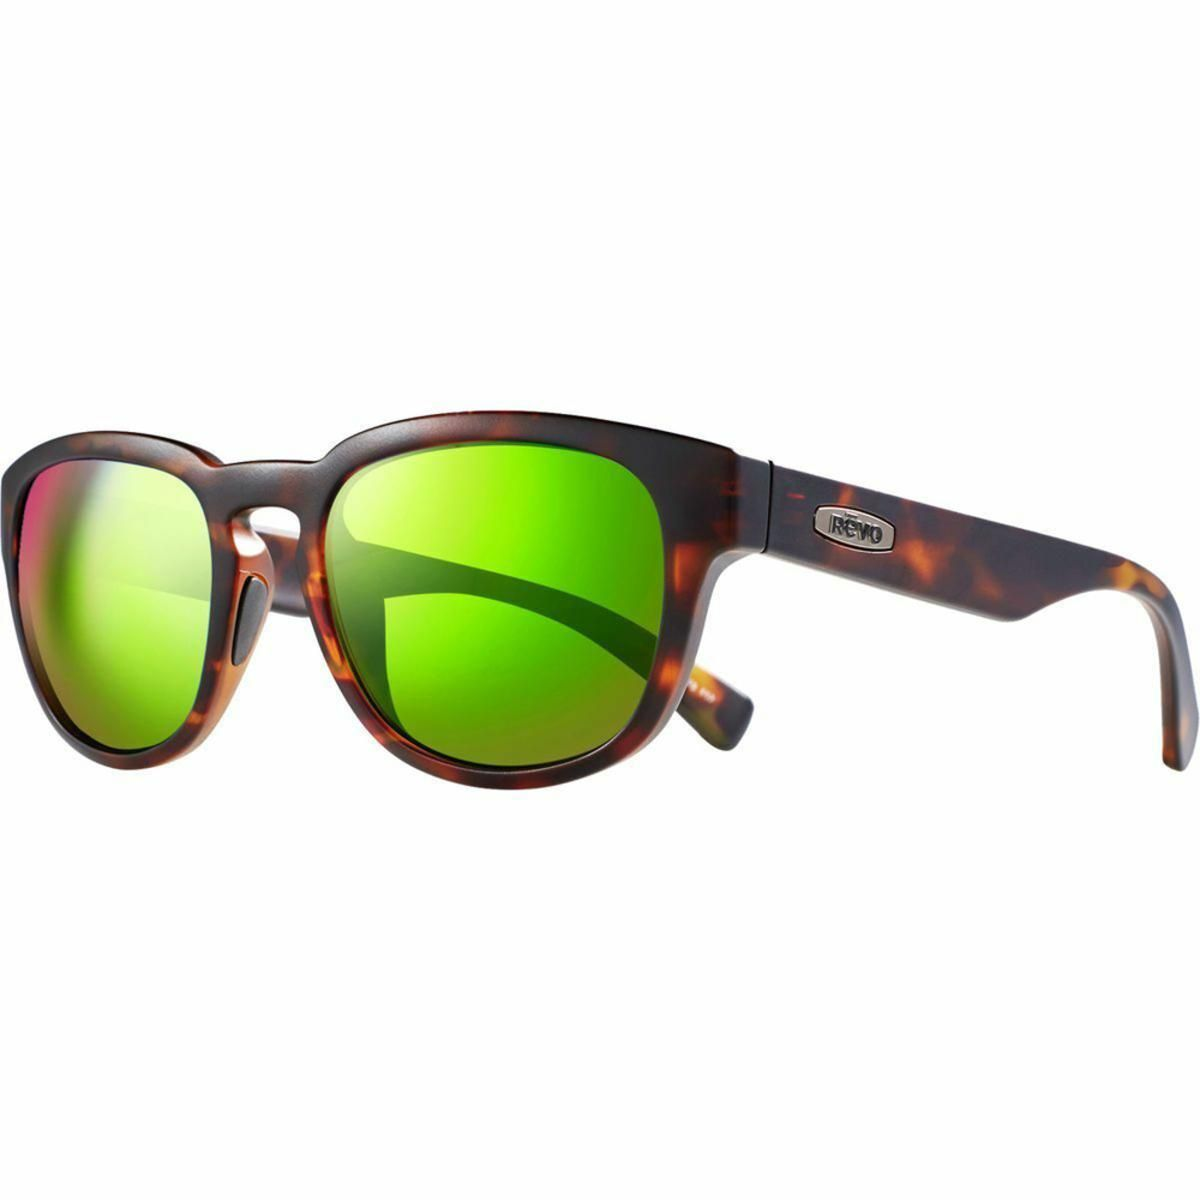 720f1415b4b3 Revo Unisex Zinger Modified Wayfarer Sunglasses Green Water Lens with Matte  Tortoise Frame - The Warming Store